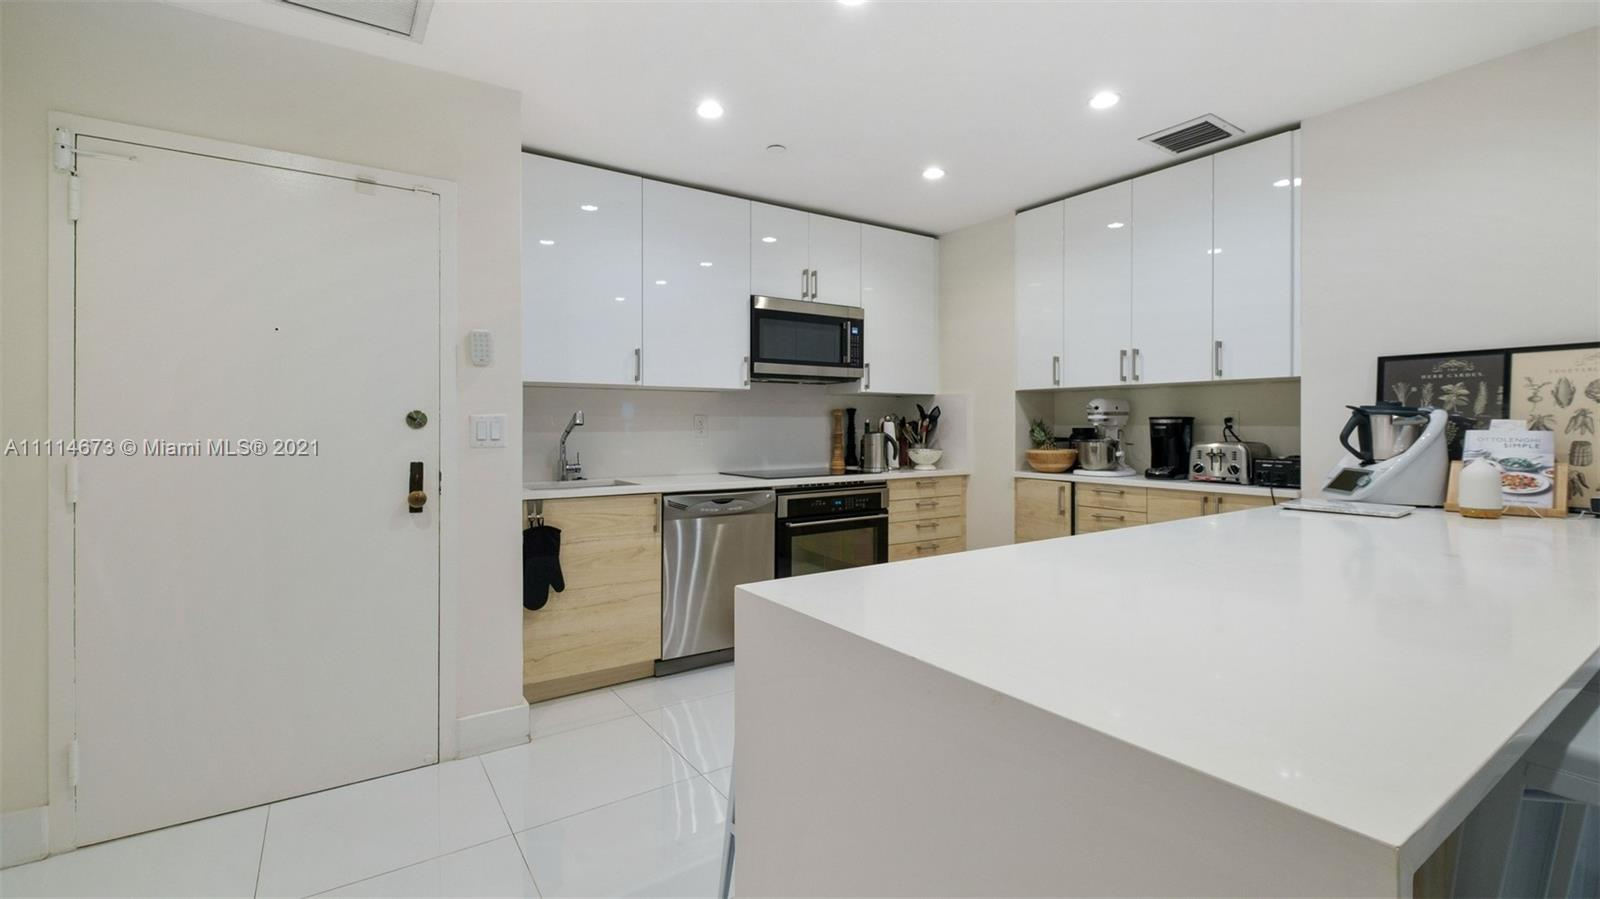 Condo For Rent at THE EMERALDBAY @ KEY COLO